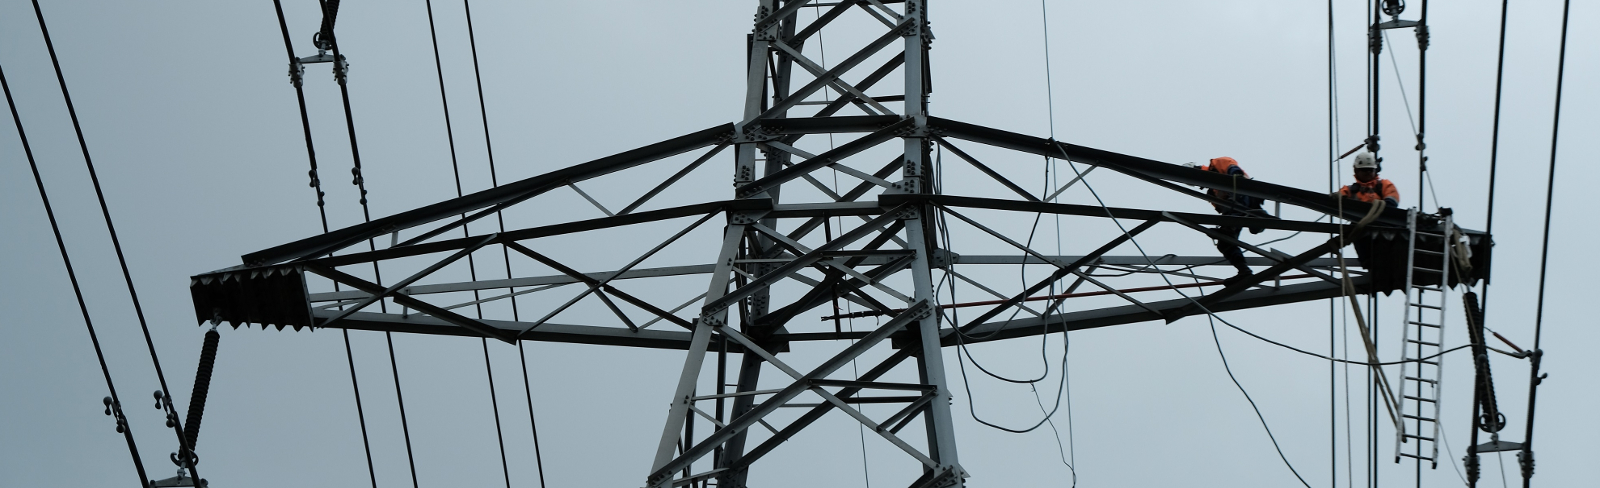 Transmission | Live Electrical Grid Maintennce